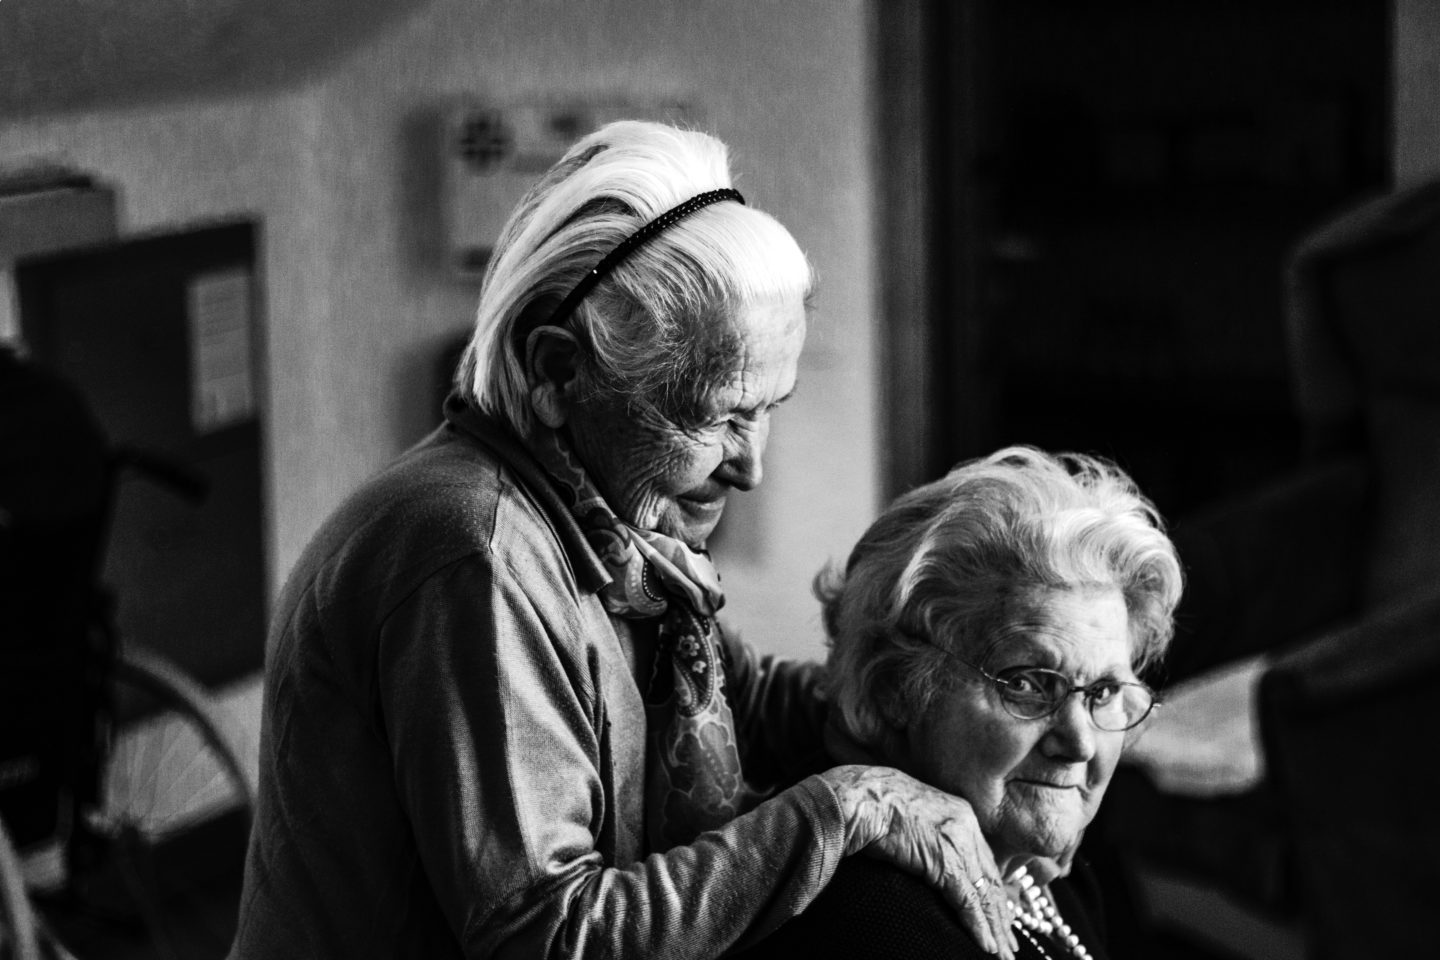 Older people in care home